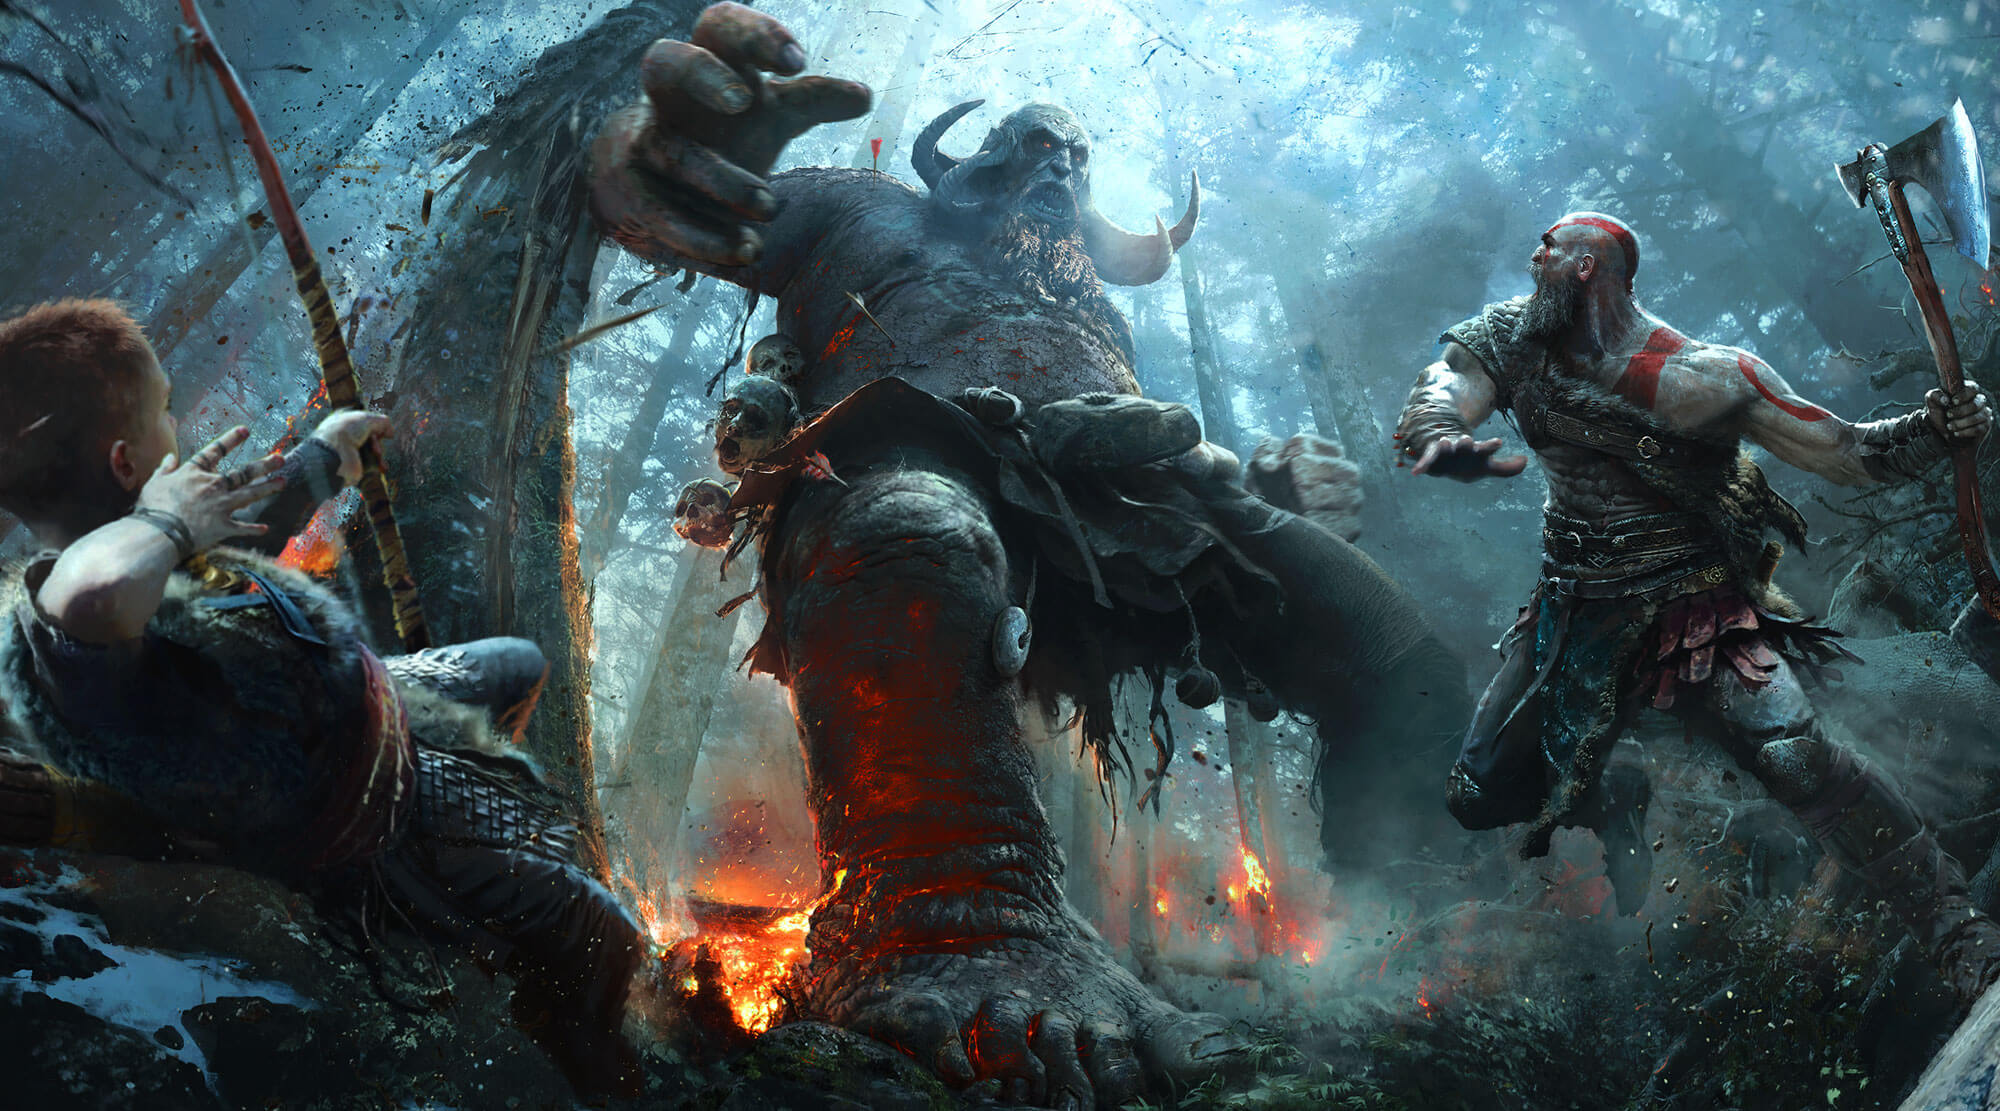 God of War, exclusivement sur PlayStation 4